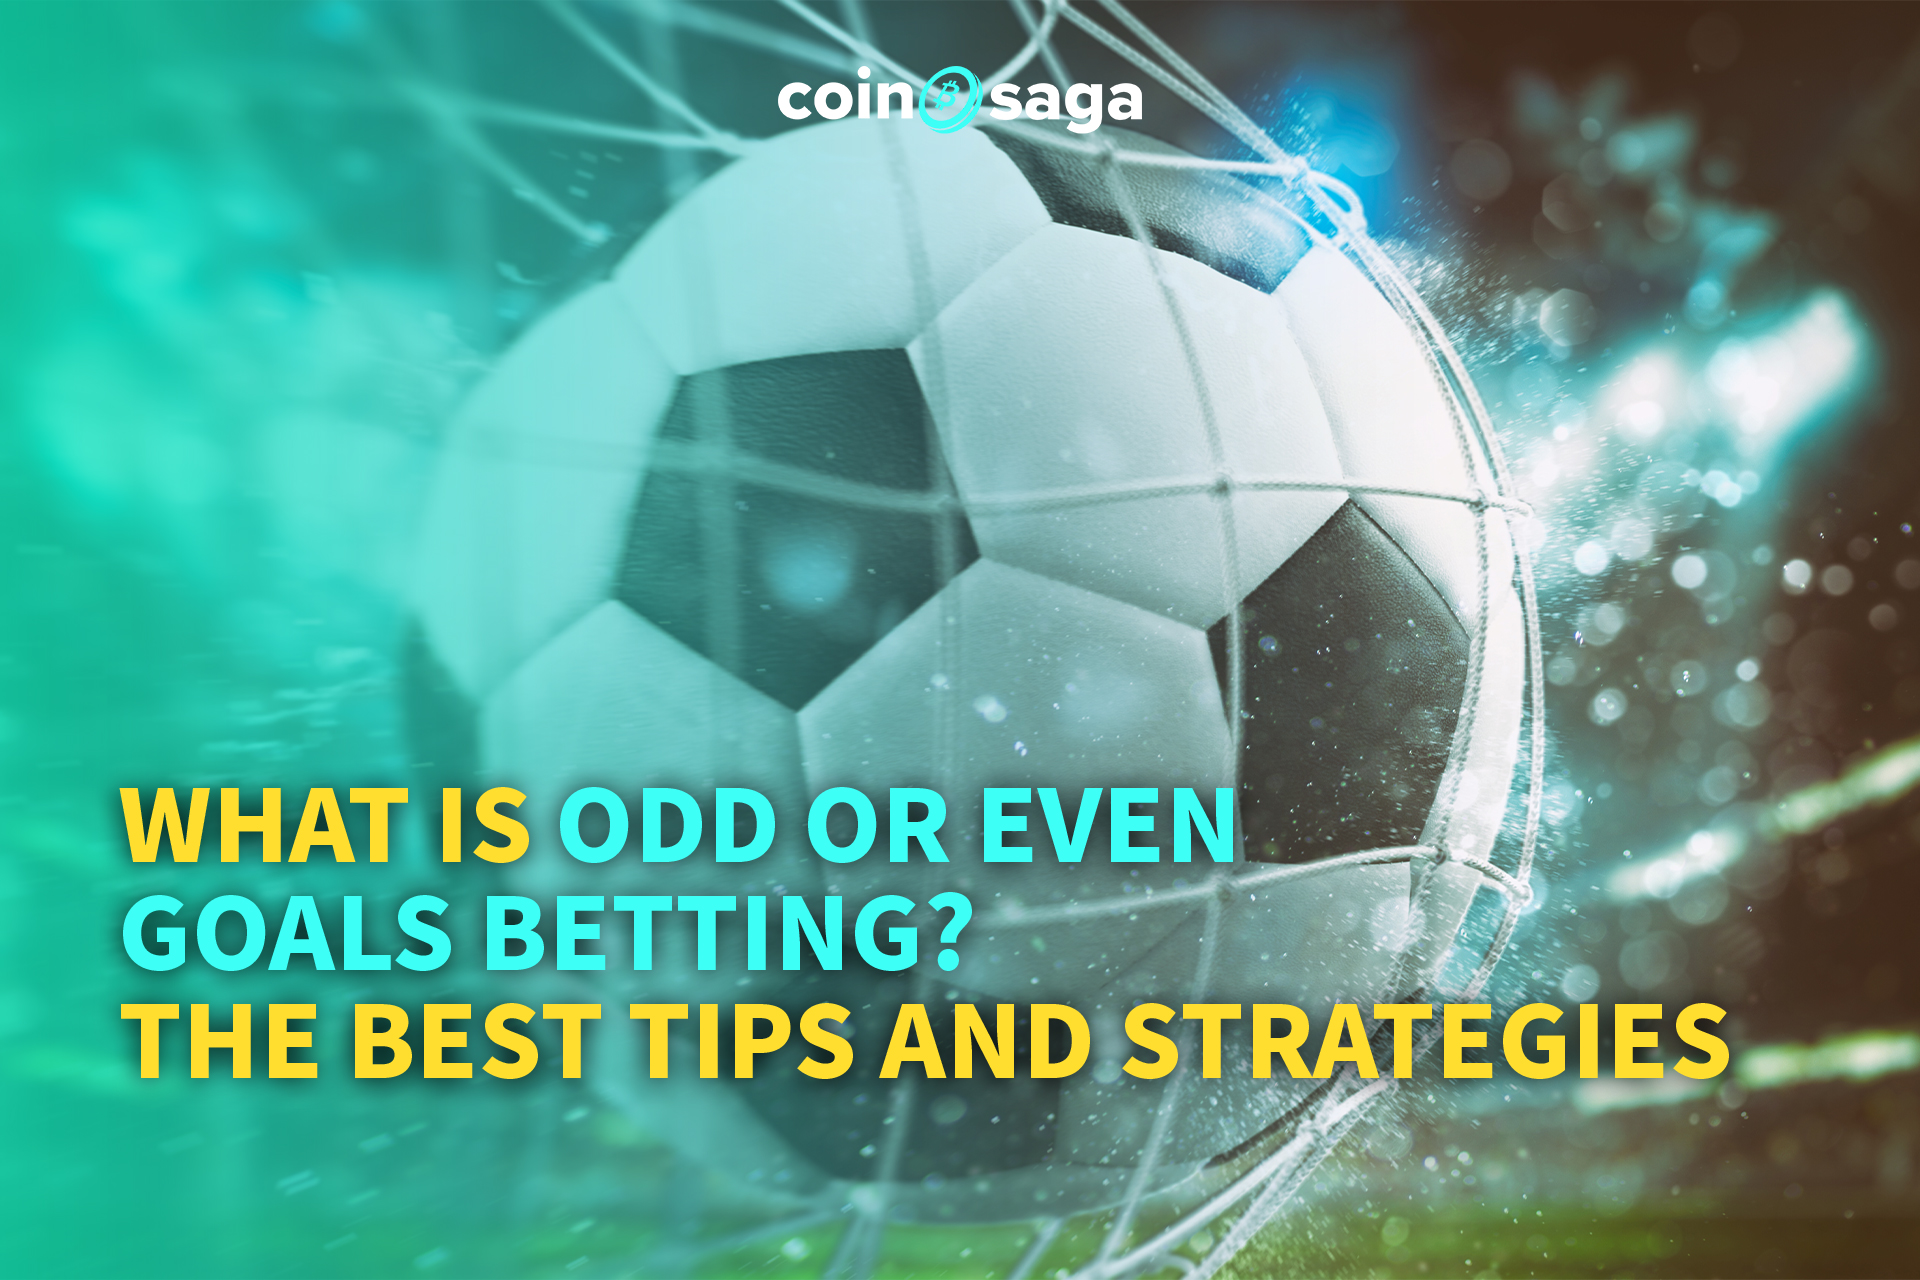 Odd or Even goals betting